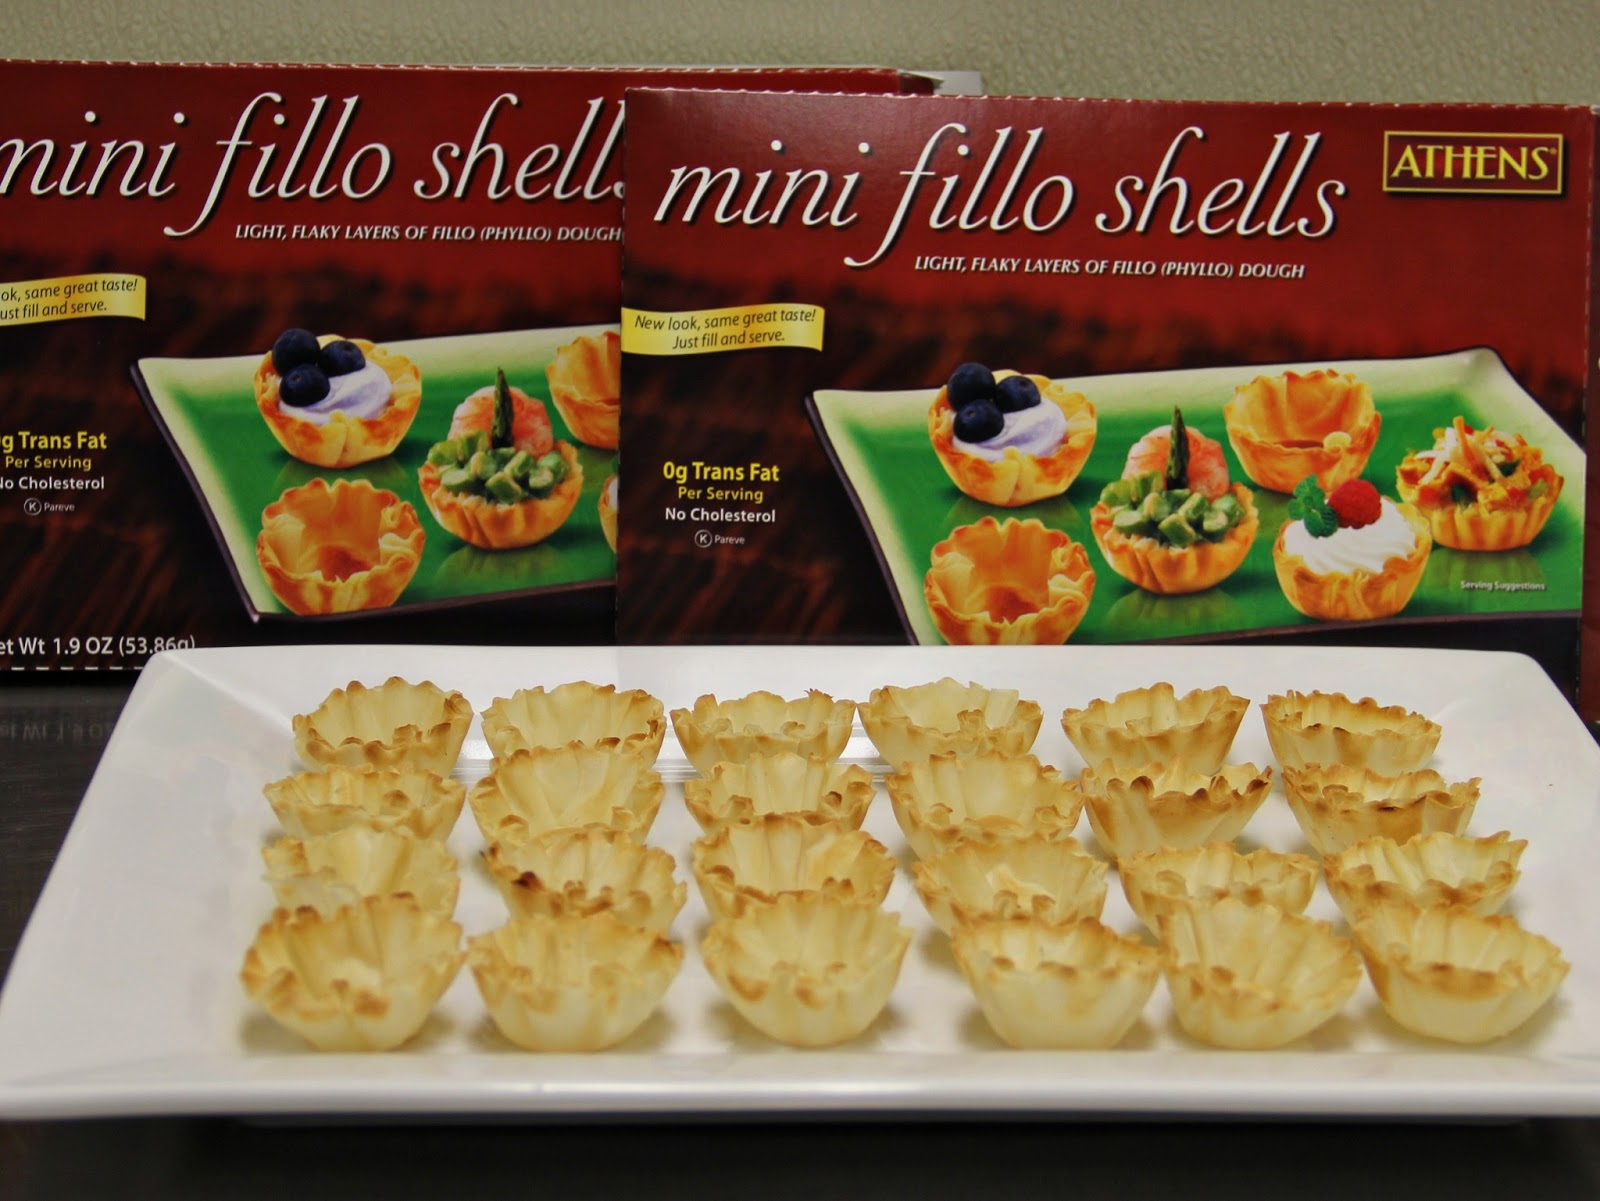 What Can I Make With Phyllo Dough And Chocolate